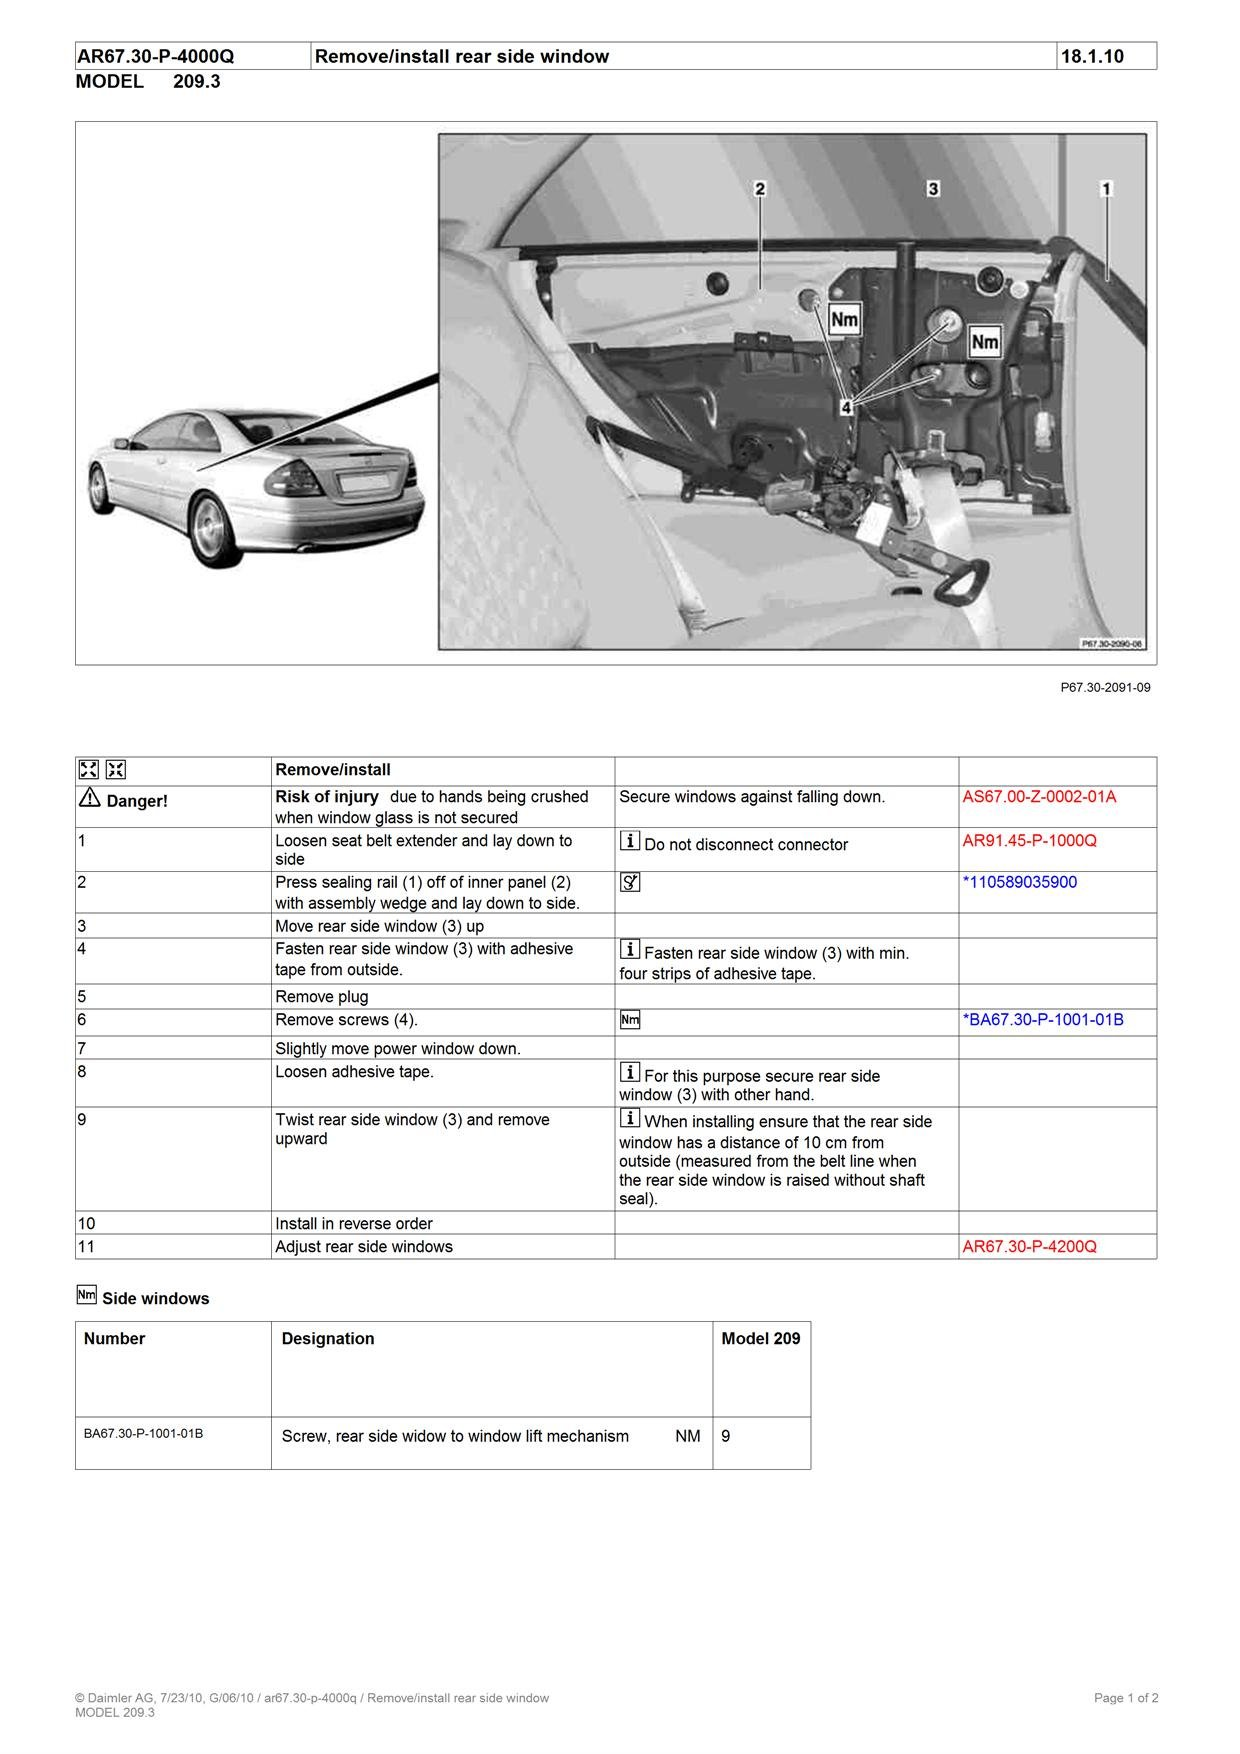 Mercedes E320 Rear Shade Fuse Box Diagram Wiring Schematics 2001 Clk 320 Coupe 2003 2005 Windshield Sunshade And Back Window